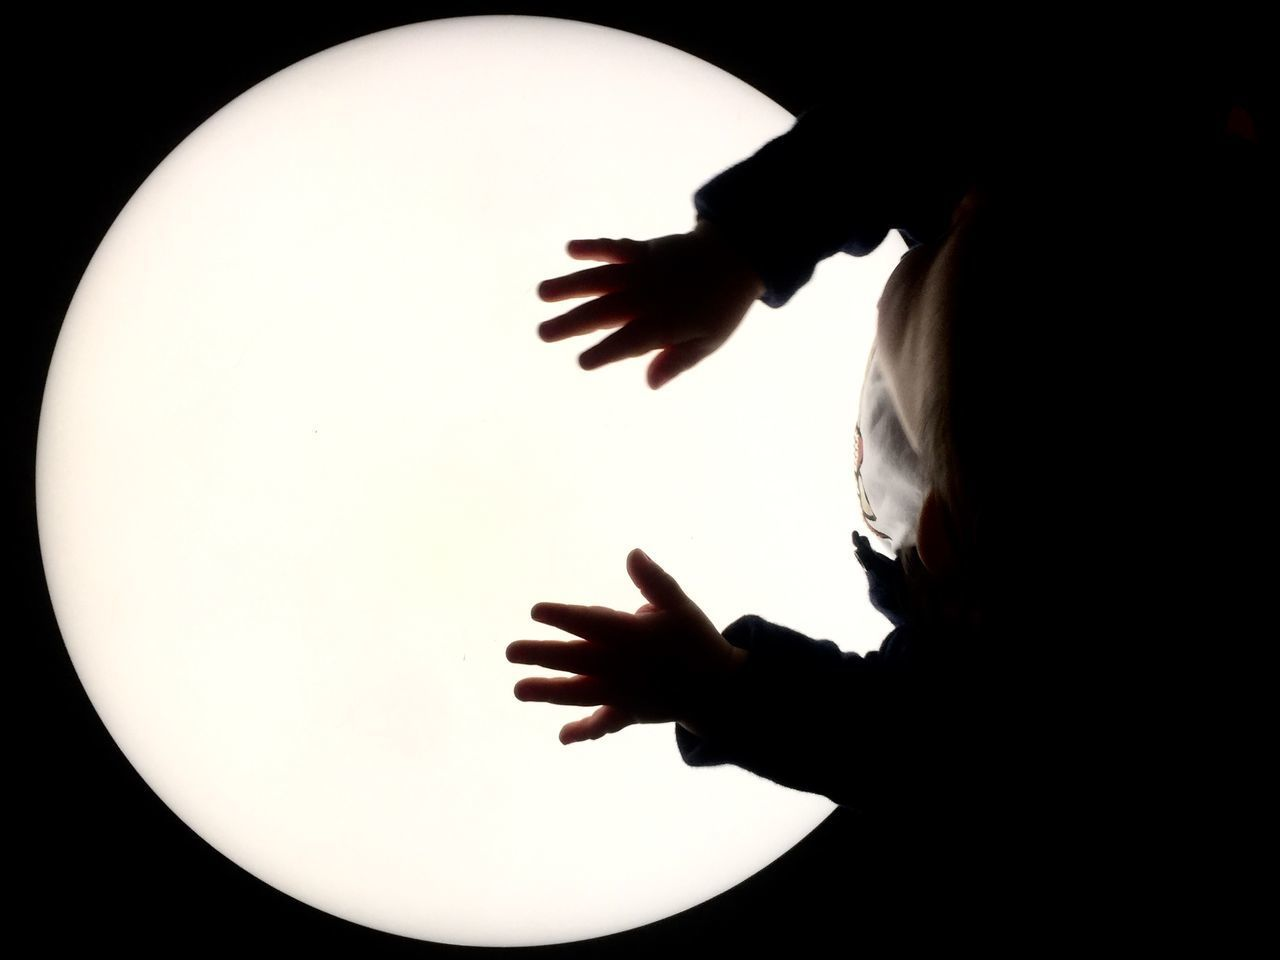 one person, human hand, indoors, hand, real people, silhouette, men, leisure activity, lifestyles, human body part, child, unrecognizable person, studio shot, copy space, gesturing, holding, childhood, lighting equipment, finger, innocence